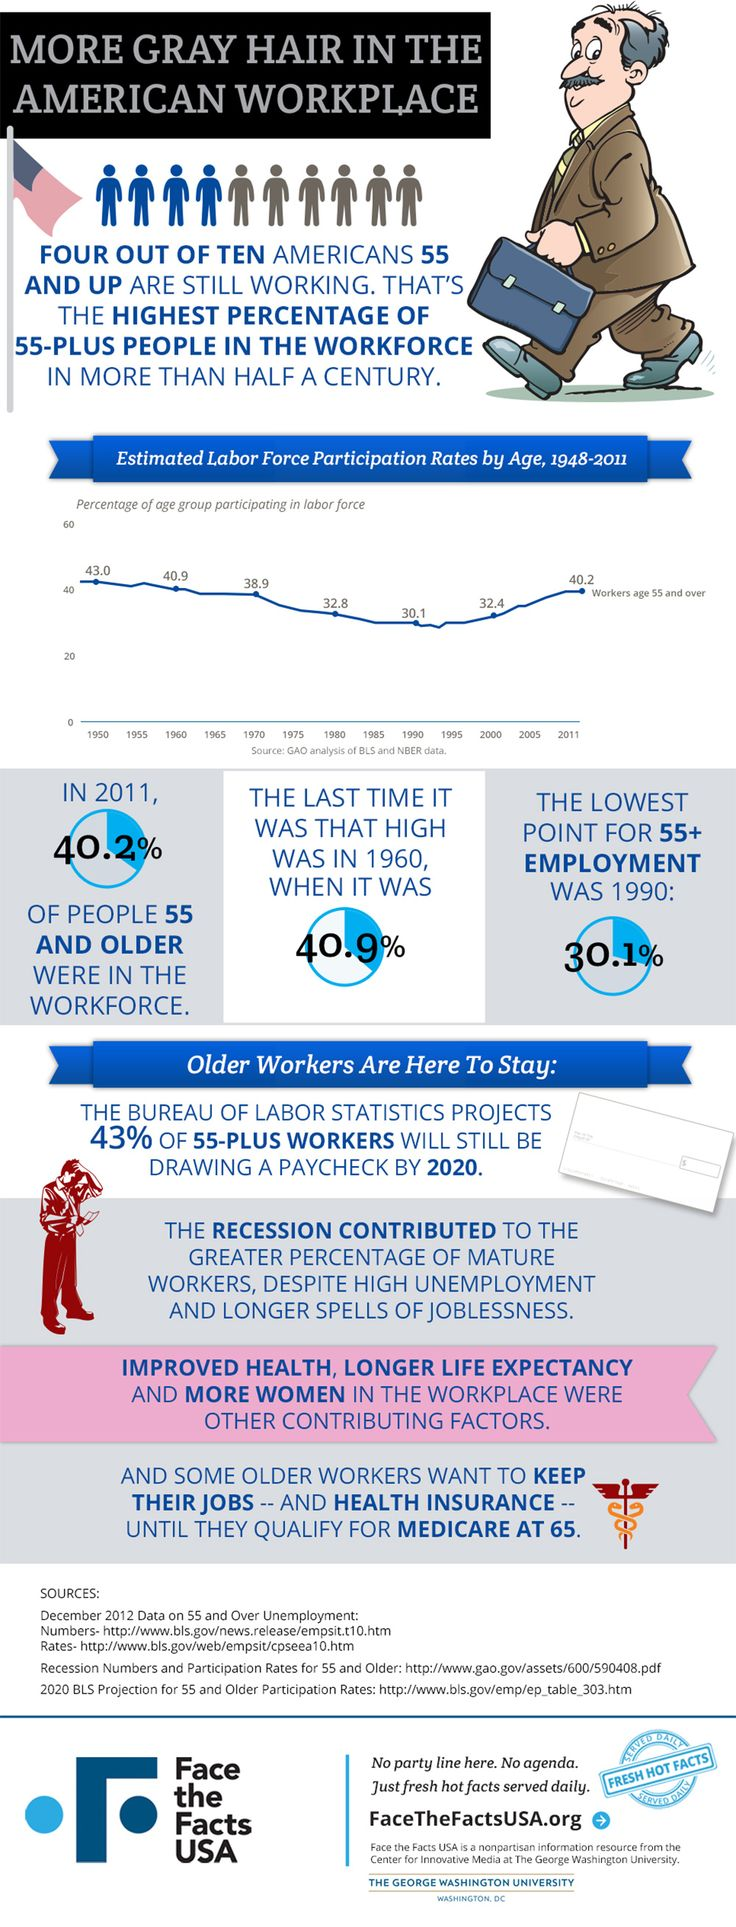 best images about face the facts by apollo matrix on more than 4 in 10 americans aged 55 and over were still employed in 2011